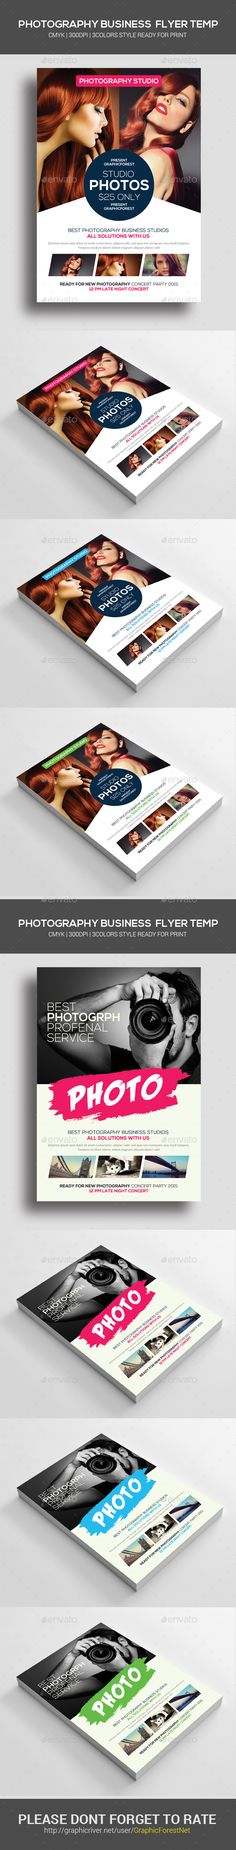 Photography Flyers Template PSD Bundle. Download here: http://graphicriver.net/item/photography-flyers-bundle/14310623?s_rank=201&ref=yinkira